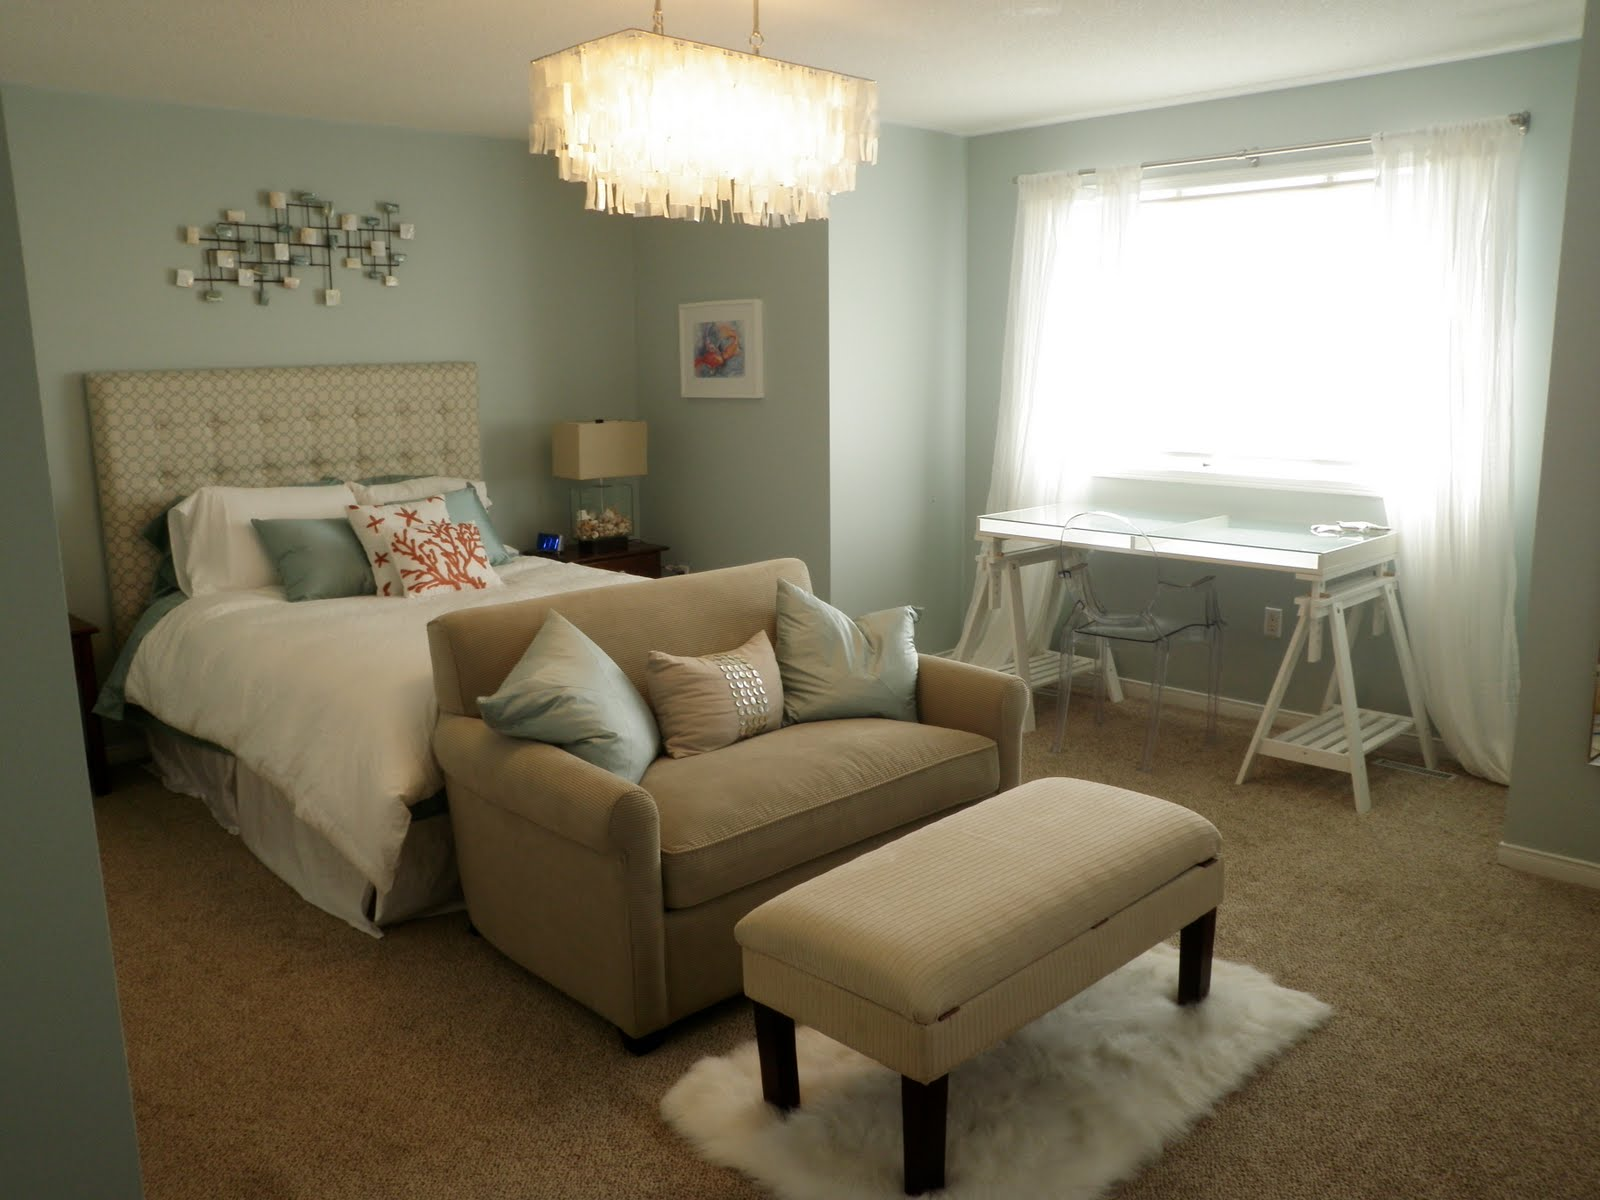 remarkable wedgewood gray bedroom | Beachnut Lane: Benjamin Moore's Wedgewood Gray & Woodlawn Blue